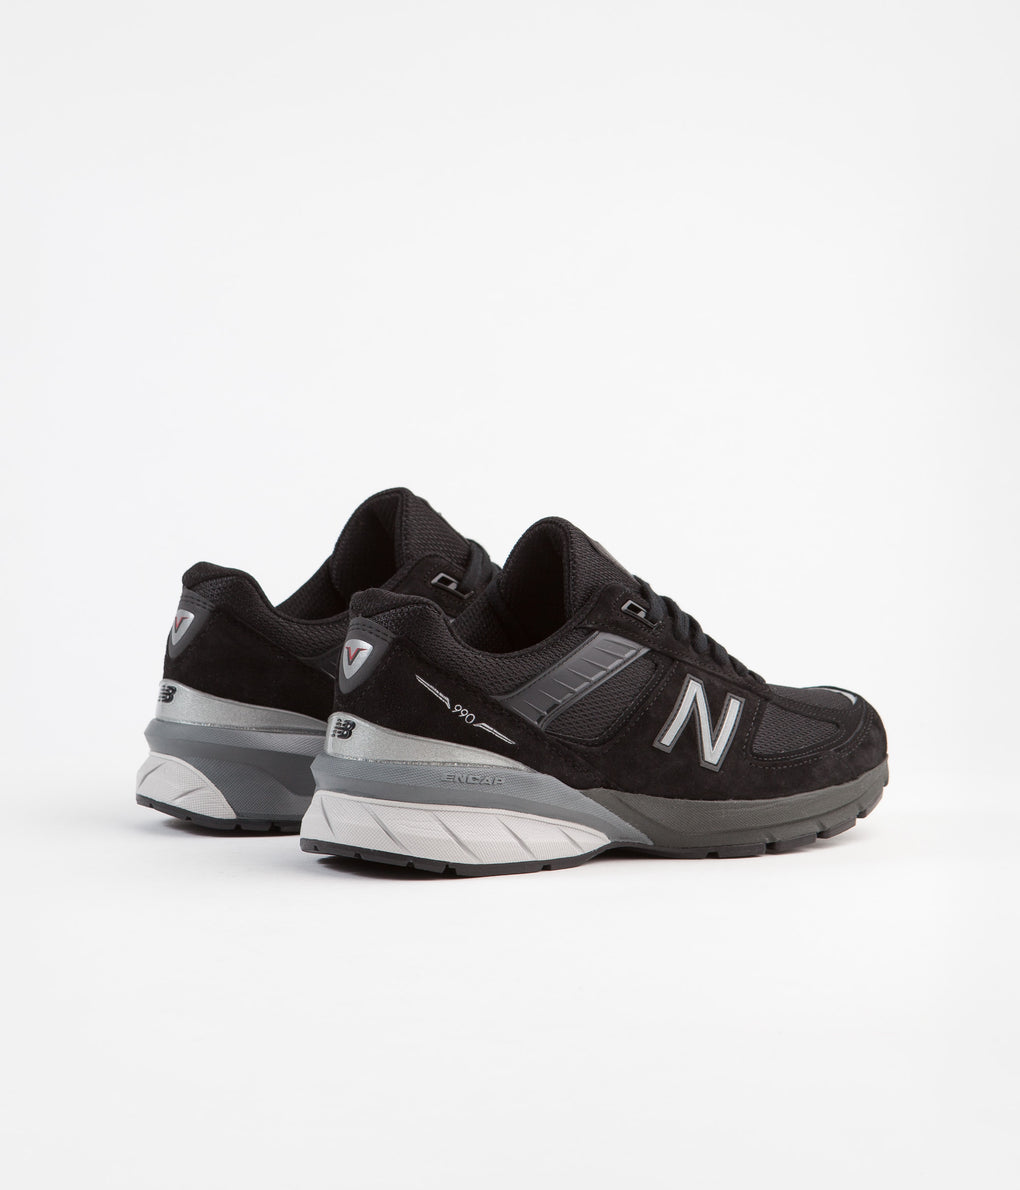 New Balance 990 v5 Made In US Shoes - Black / Silver